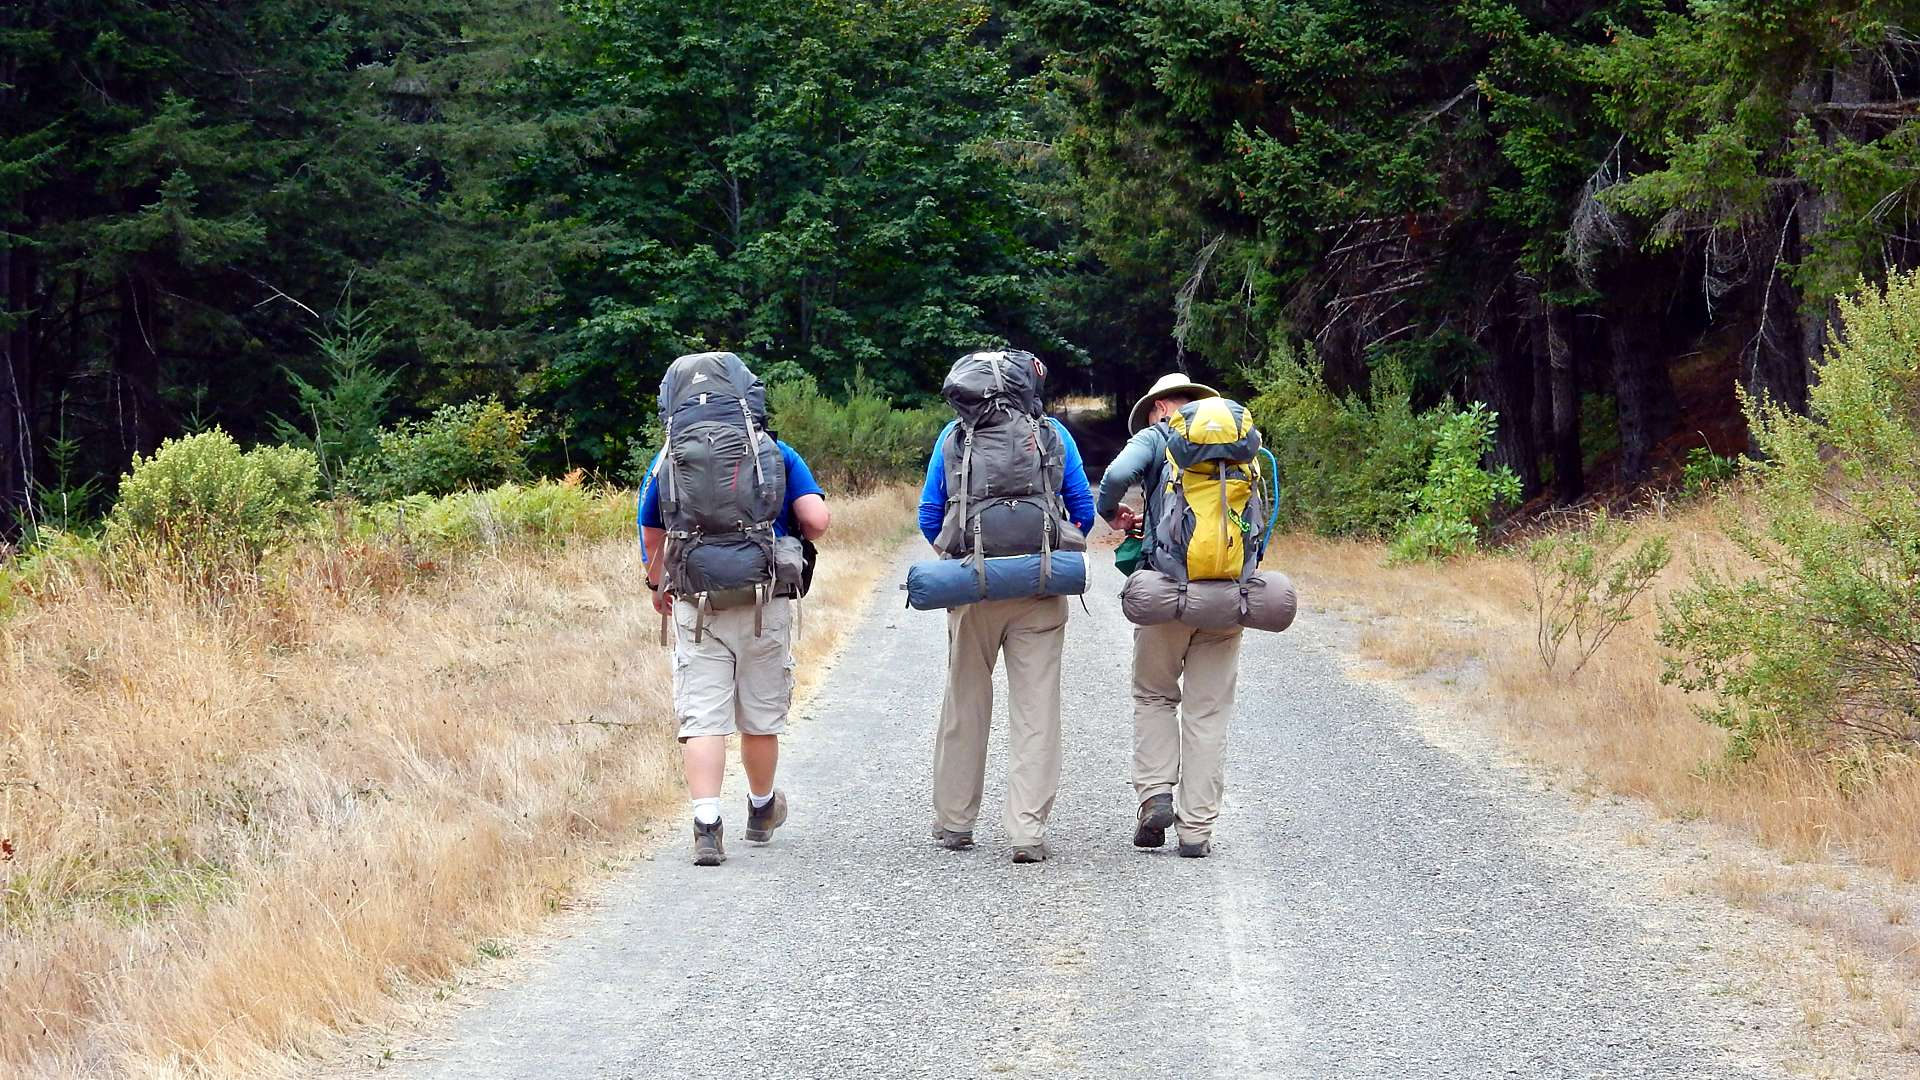 57a9aa9a613 136  Move to Backpack, Backpack to Move   The First 40 Miles  Hiking ...